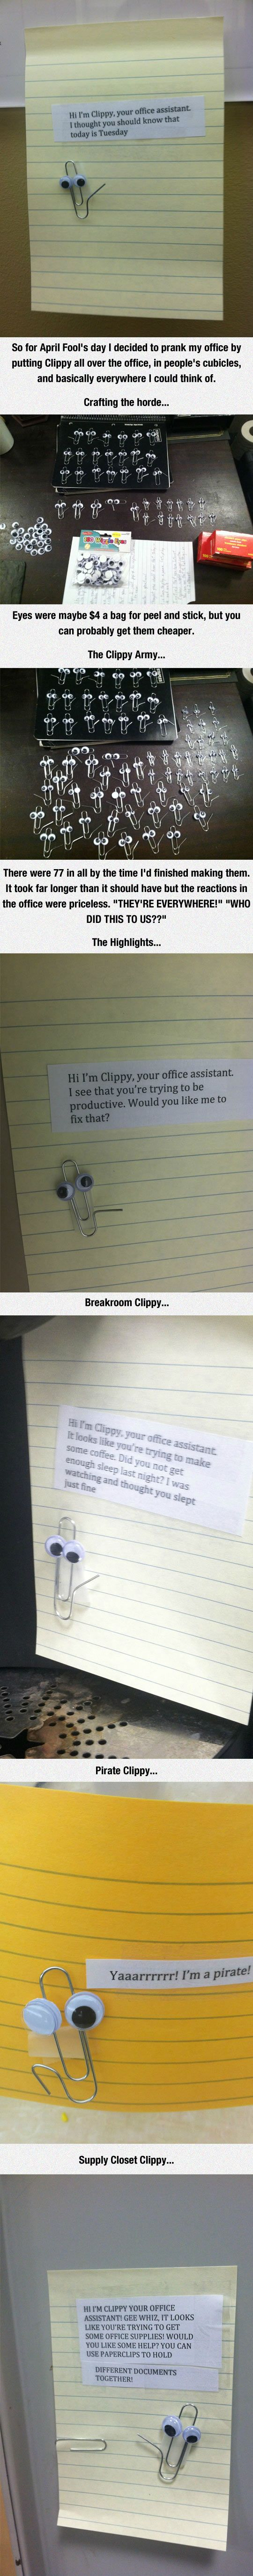 OMG CLIPPY!! This is brilliant.